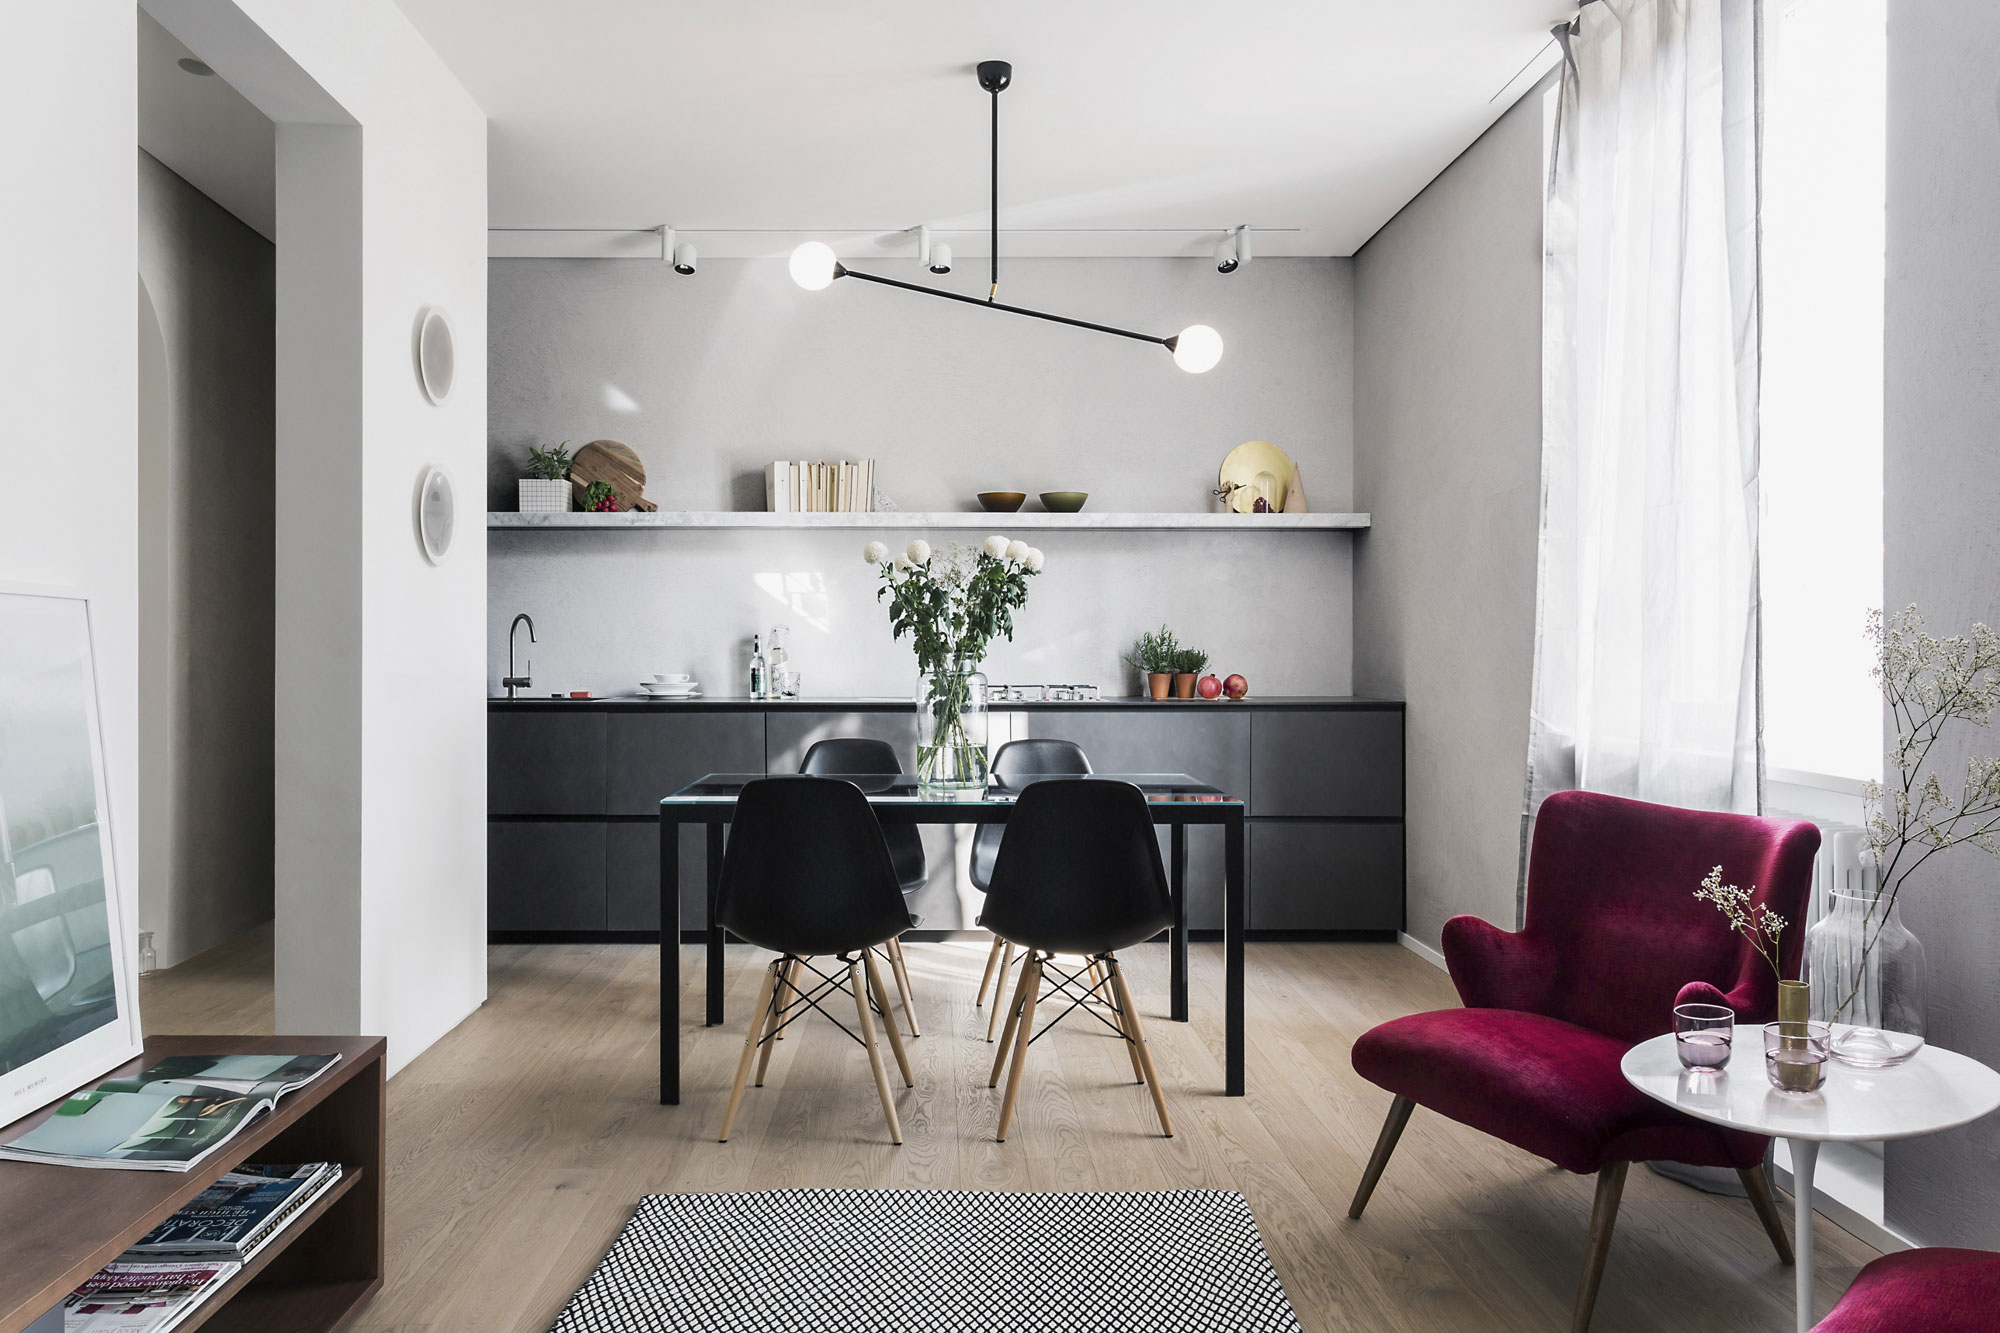 AIM Carries Out a Renovation in Milan, Italy